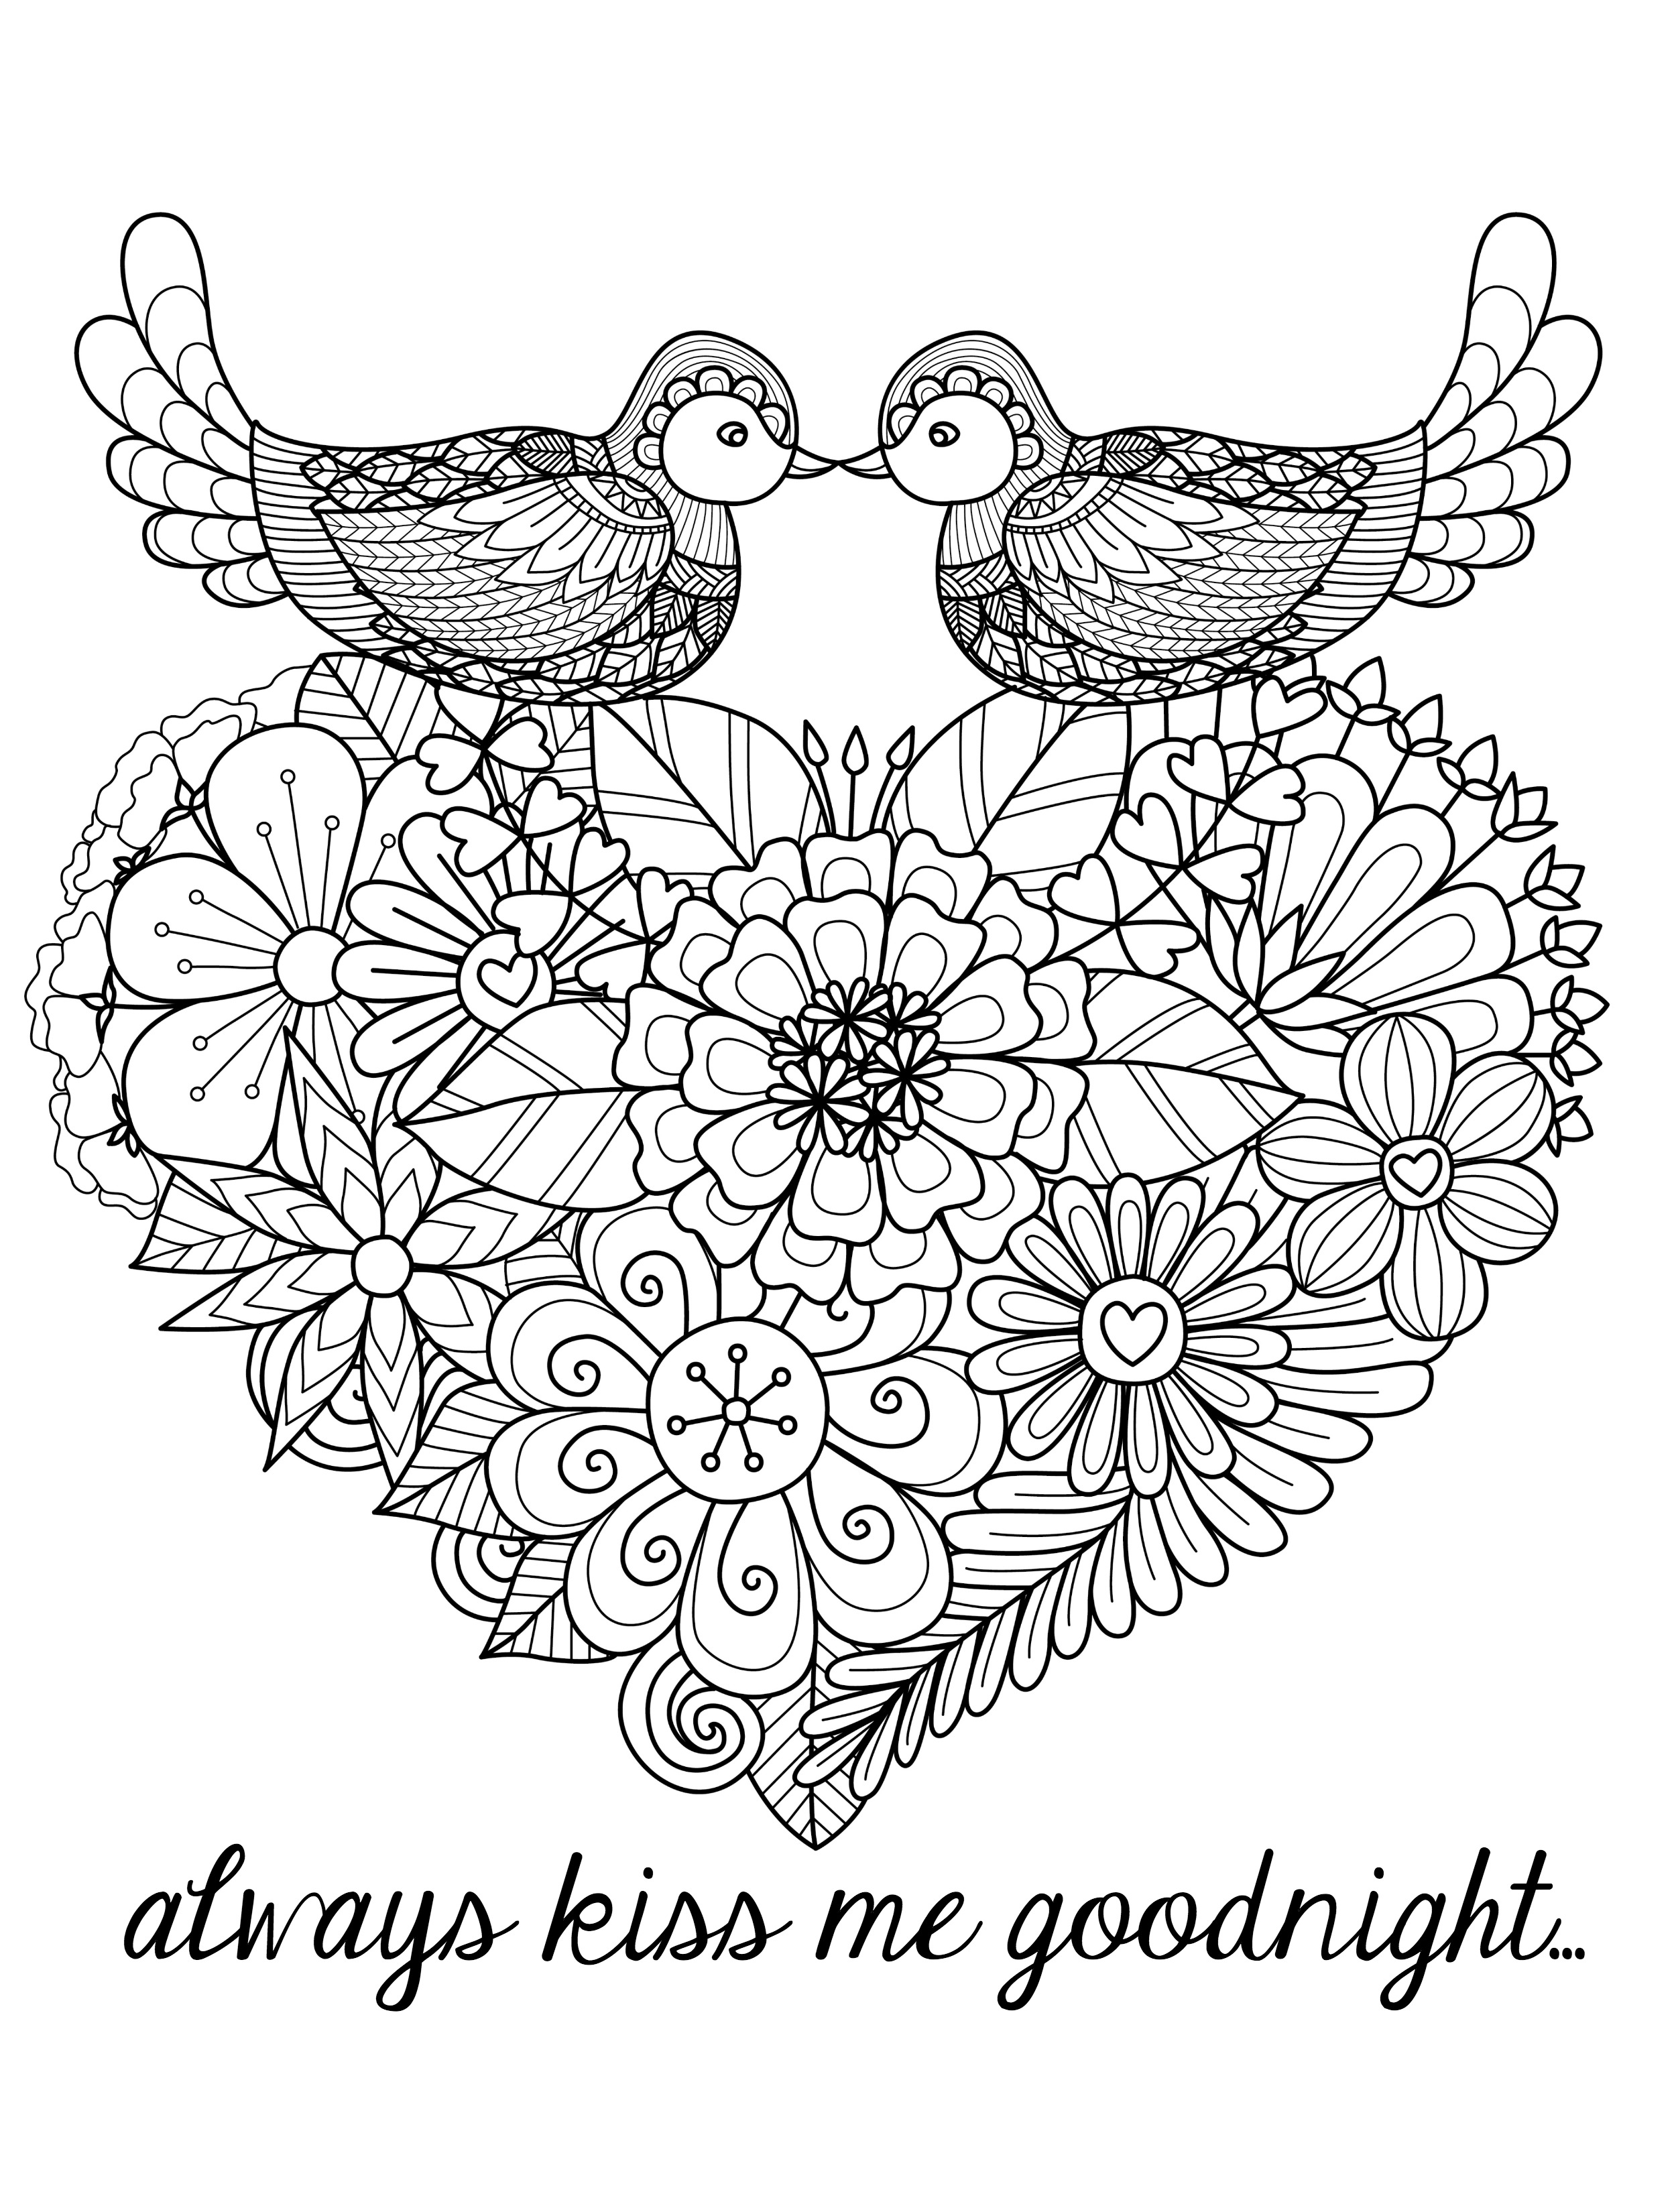 coloring templates for adults coloring templates for adults coloring templates adults for